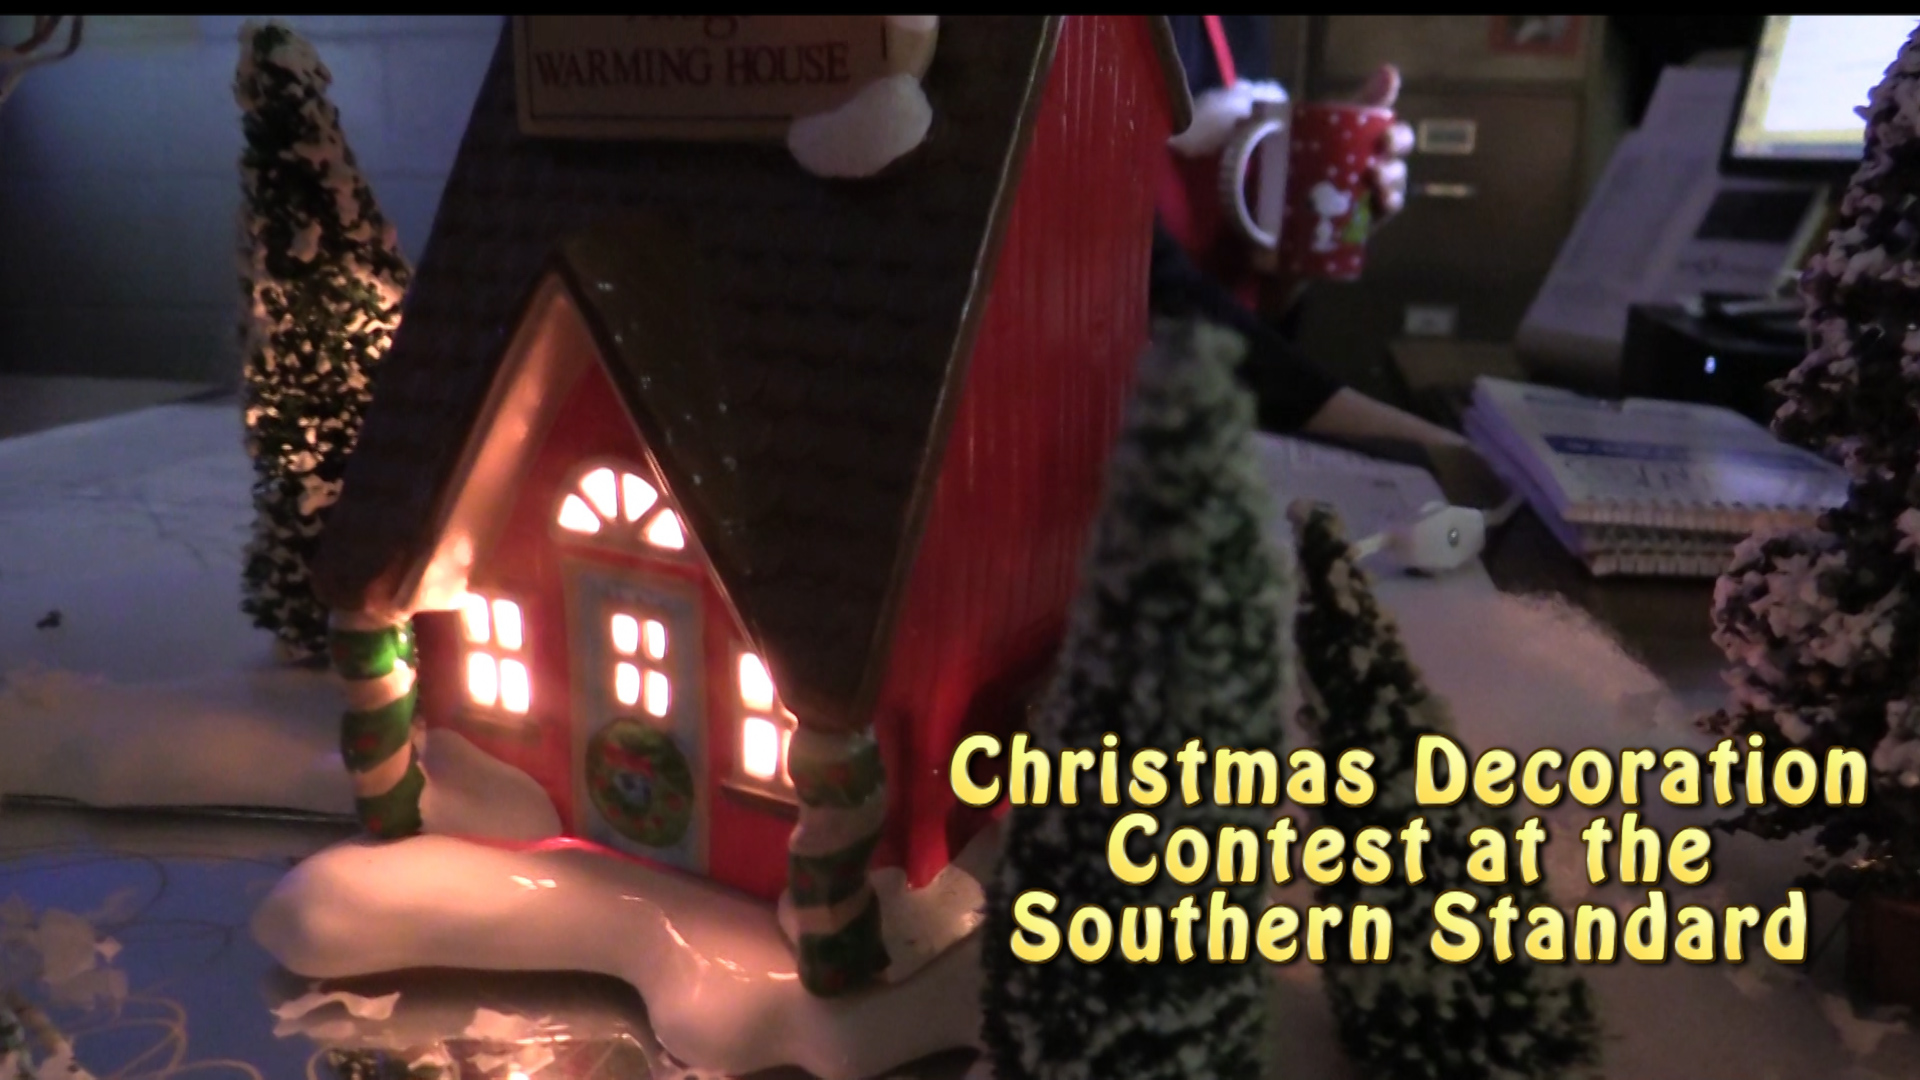 VIDEO - Christmas at the Southern Standard